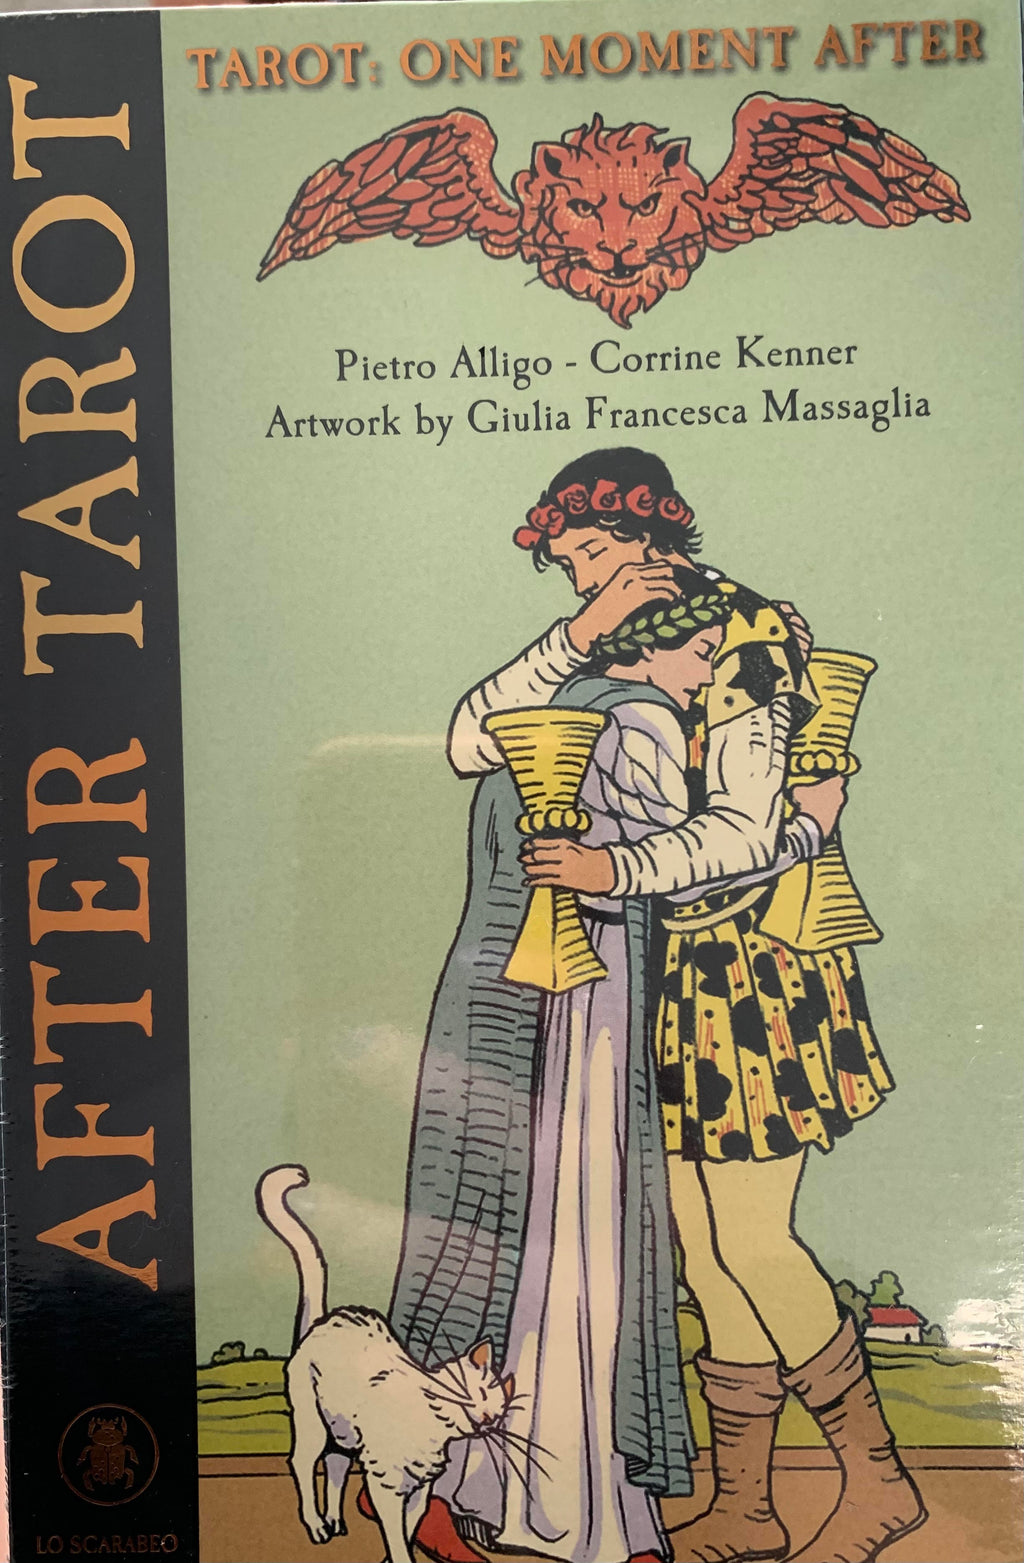 After Tarot Kit - BY CORRINE KENNER, PIETRO ALLIGO, GIULIA F. MASSAGLIA